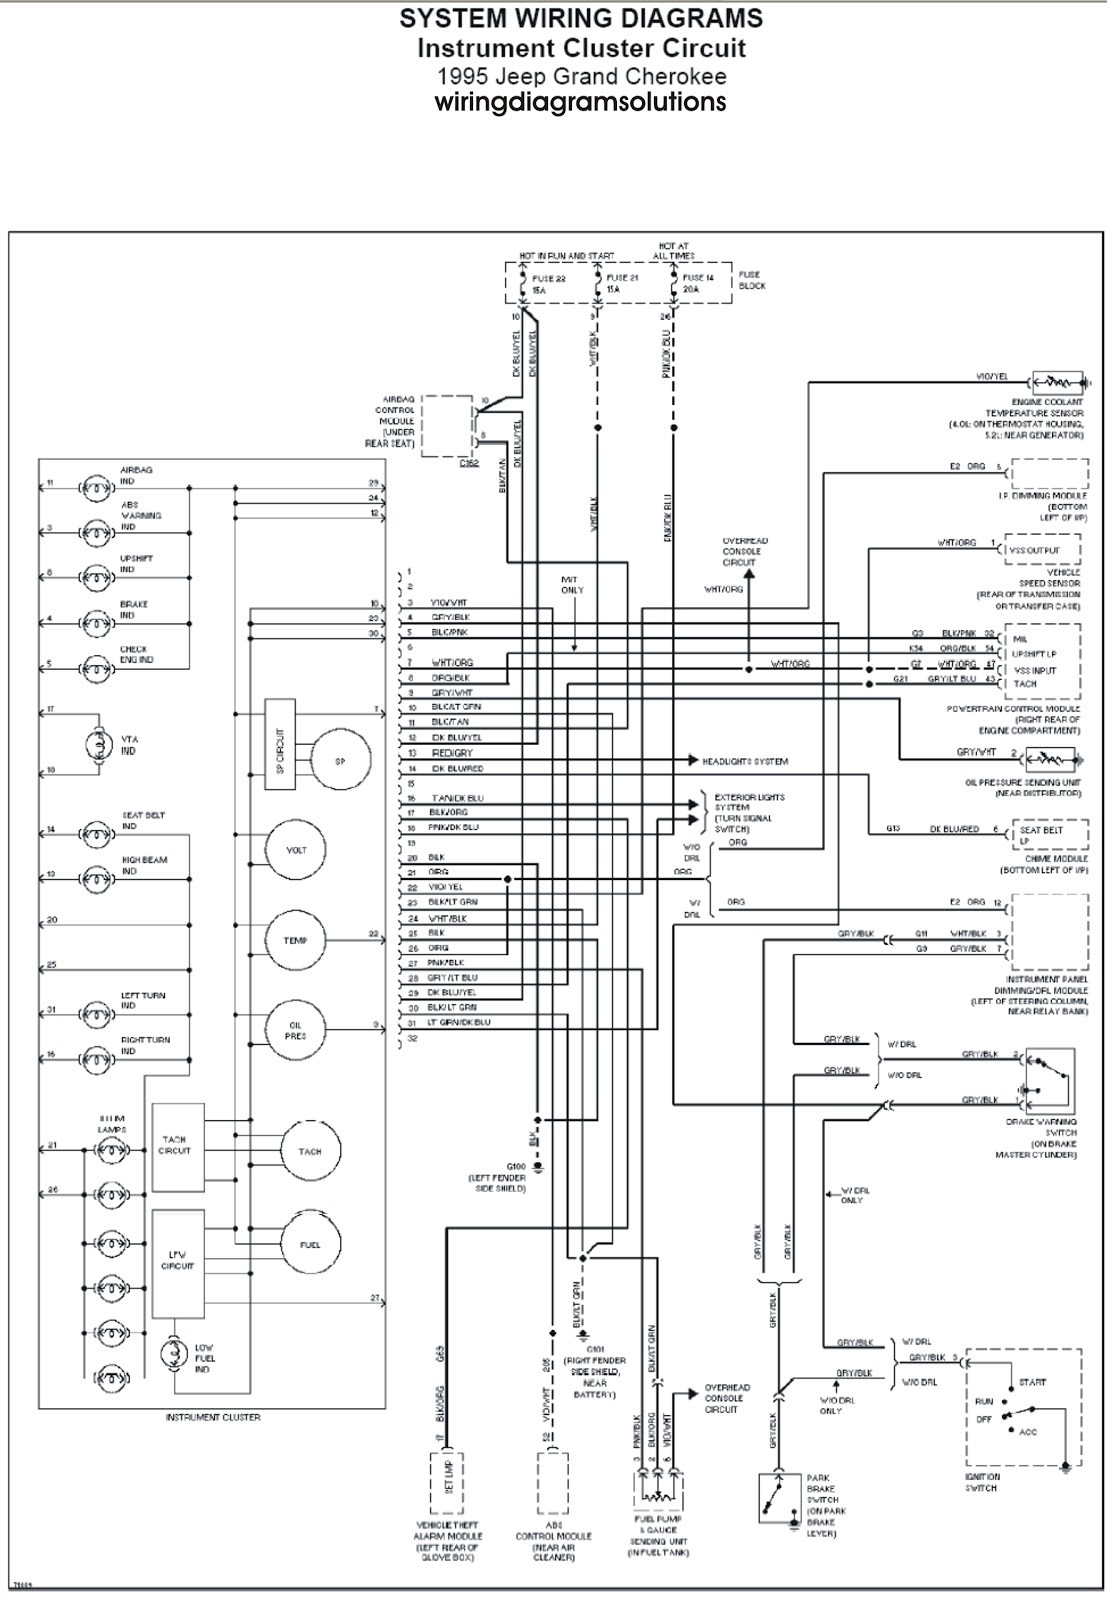 05 grand cherokee abs wiring diagram wiring data 05 jeep grand cherokee abs wiring diagram jeep patriot abs wiring 2011 jeep grand cherokee wiring diagram 05 grand cherokee abs wiring diagram asfbconference2016 Choice Image